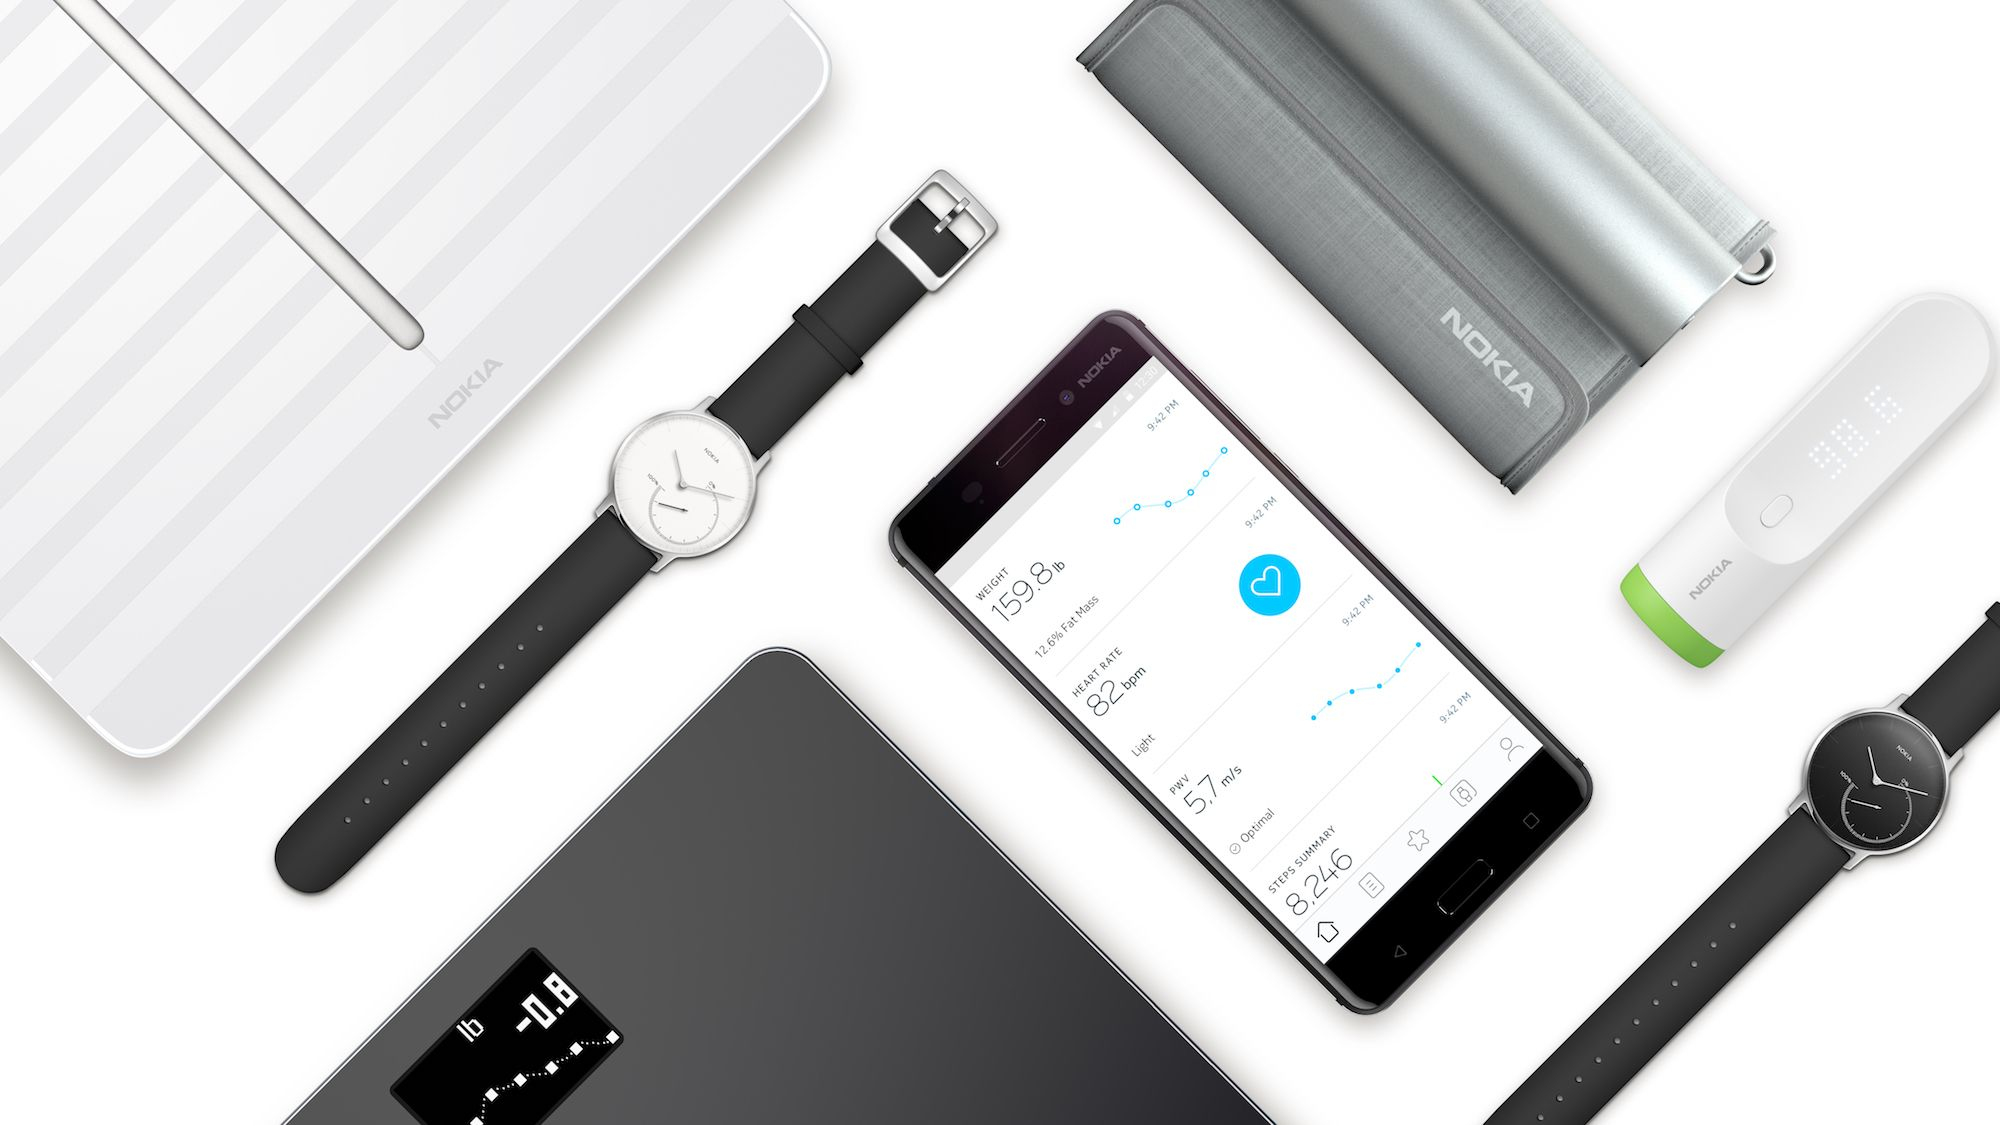 Nokia replaces the Withings brand; new Nokia branded digital health products launched.